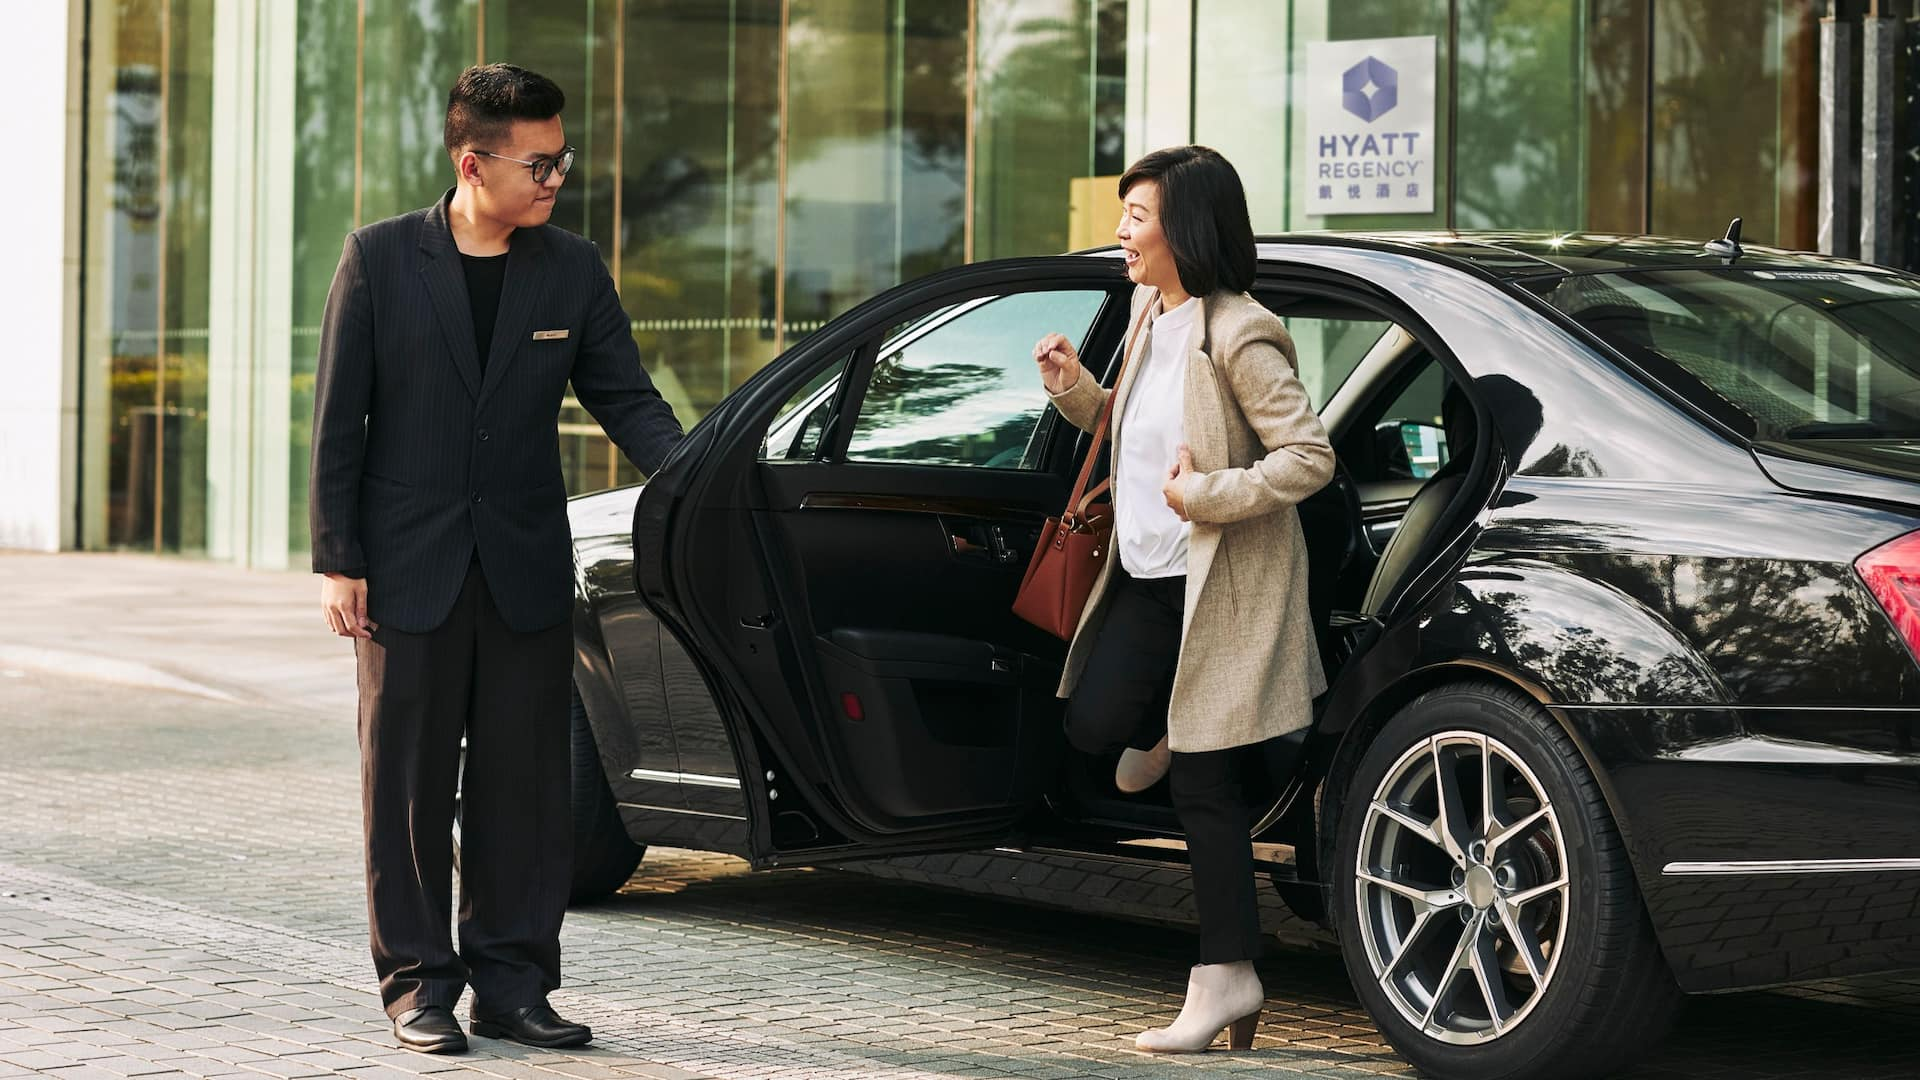 Business woman exiting car driveway